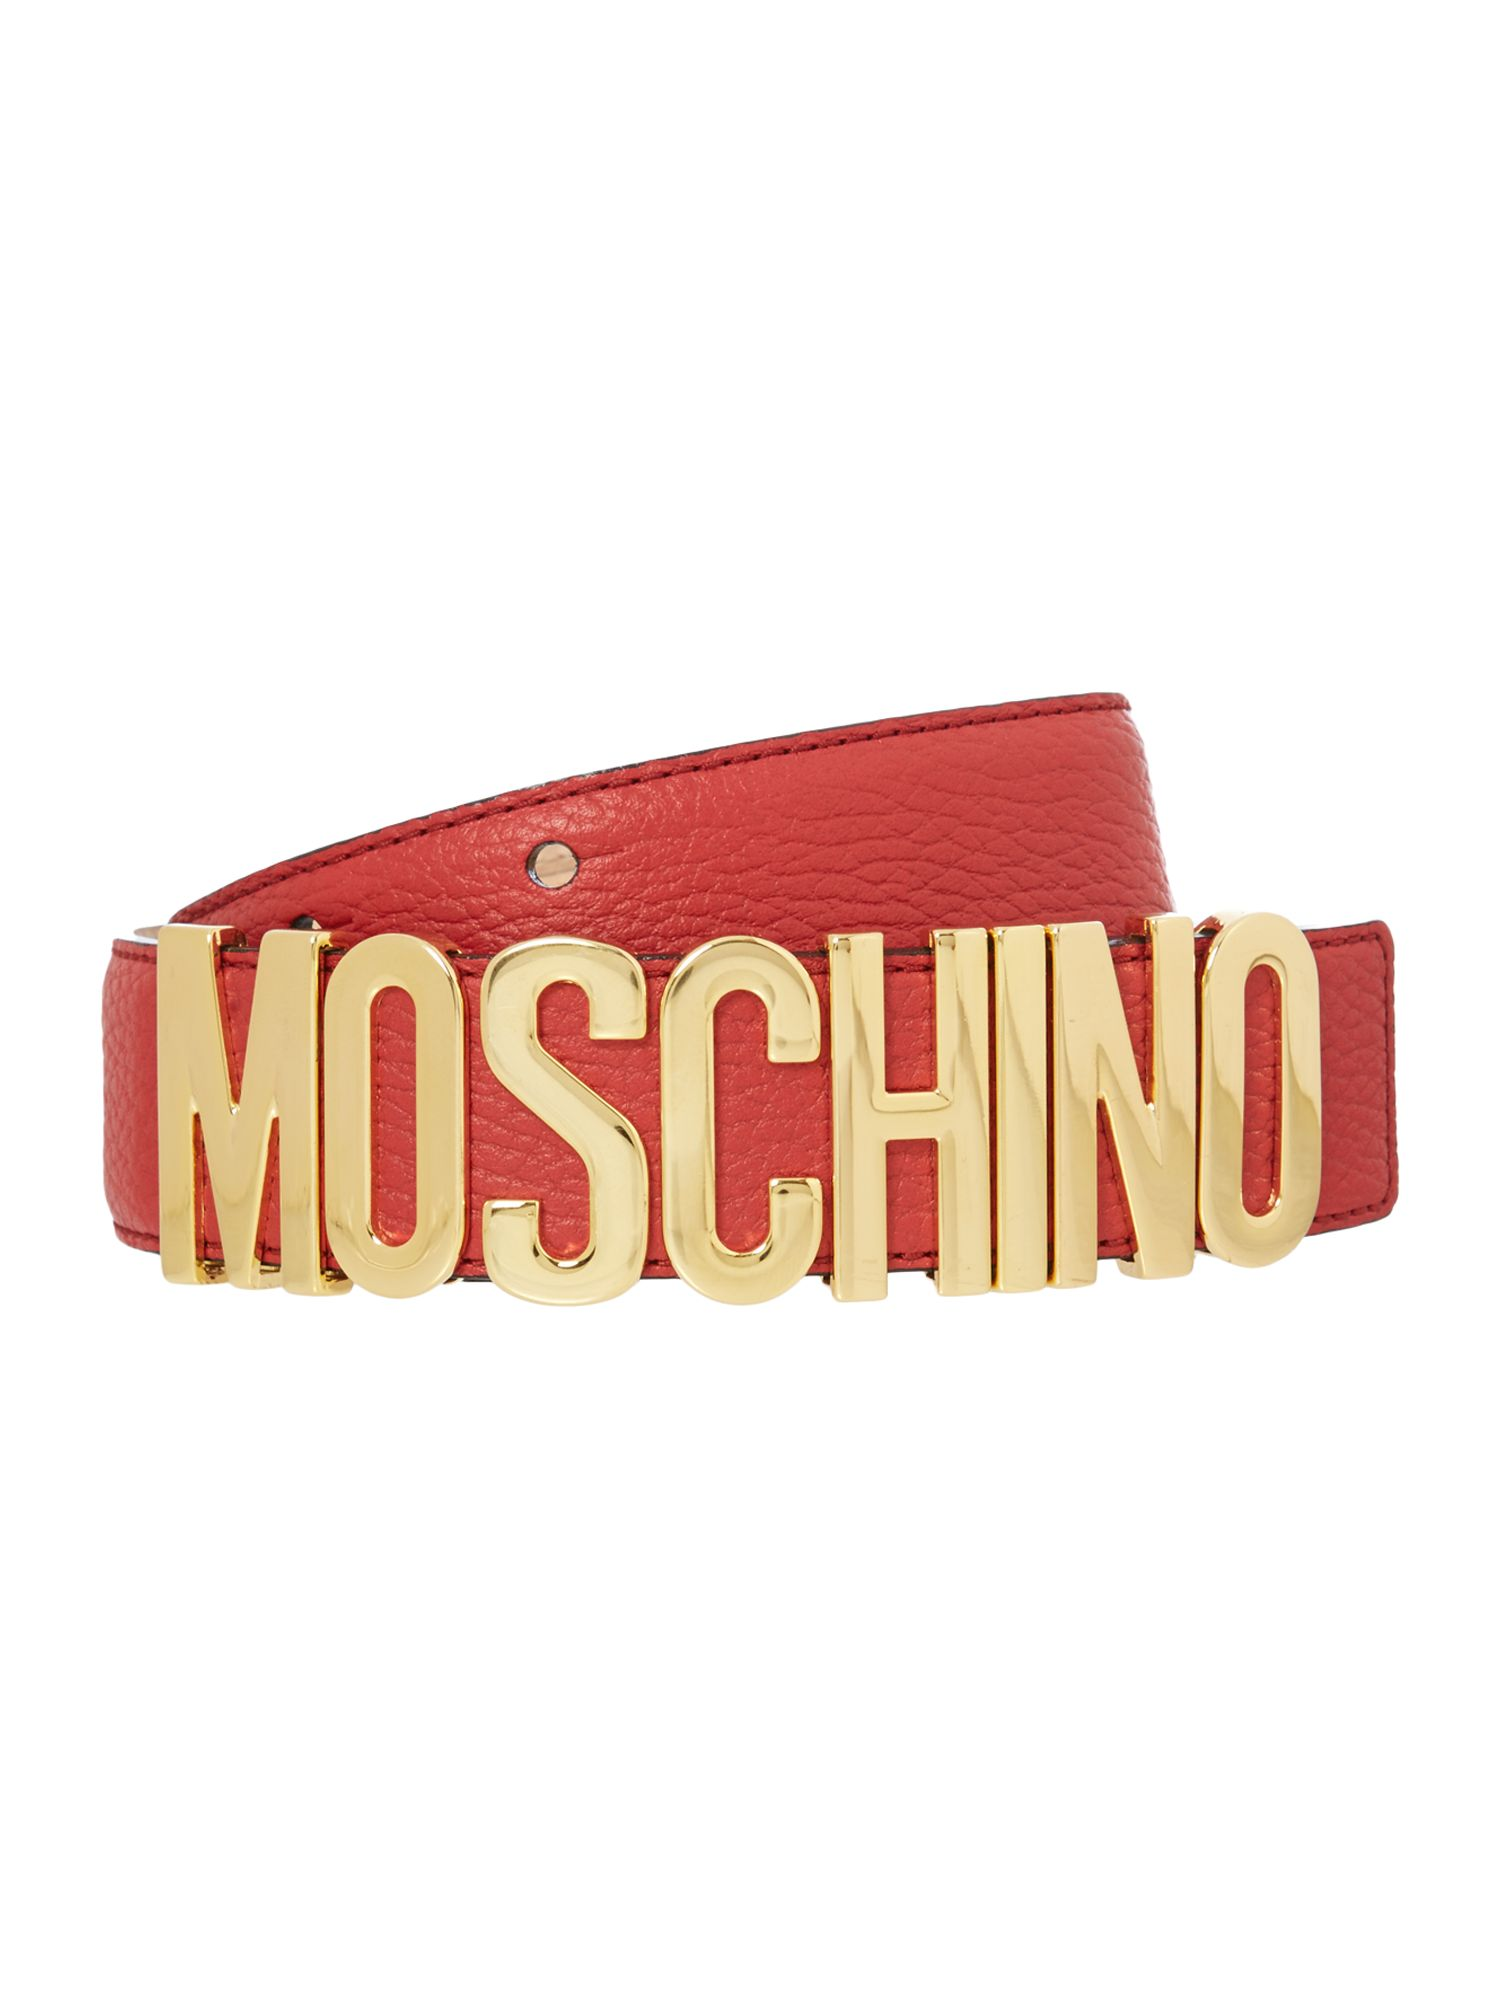 Moschino red logo belt